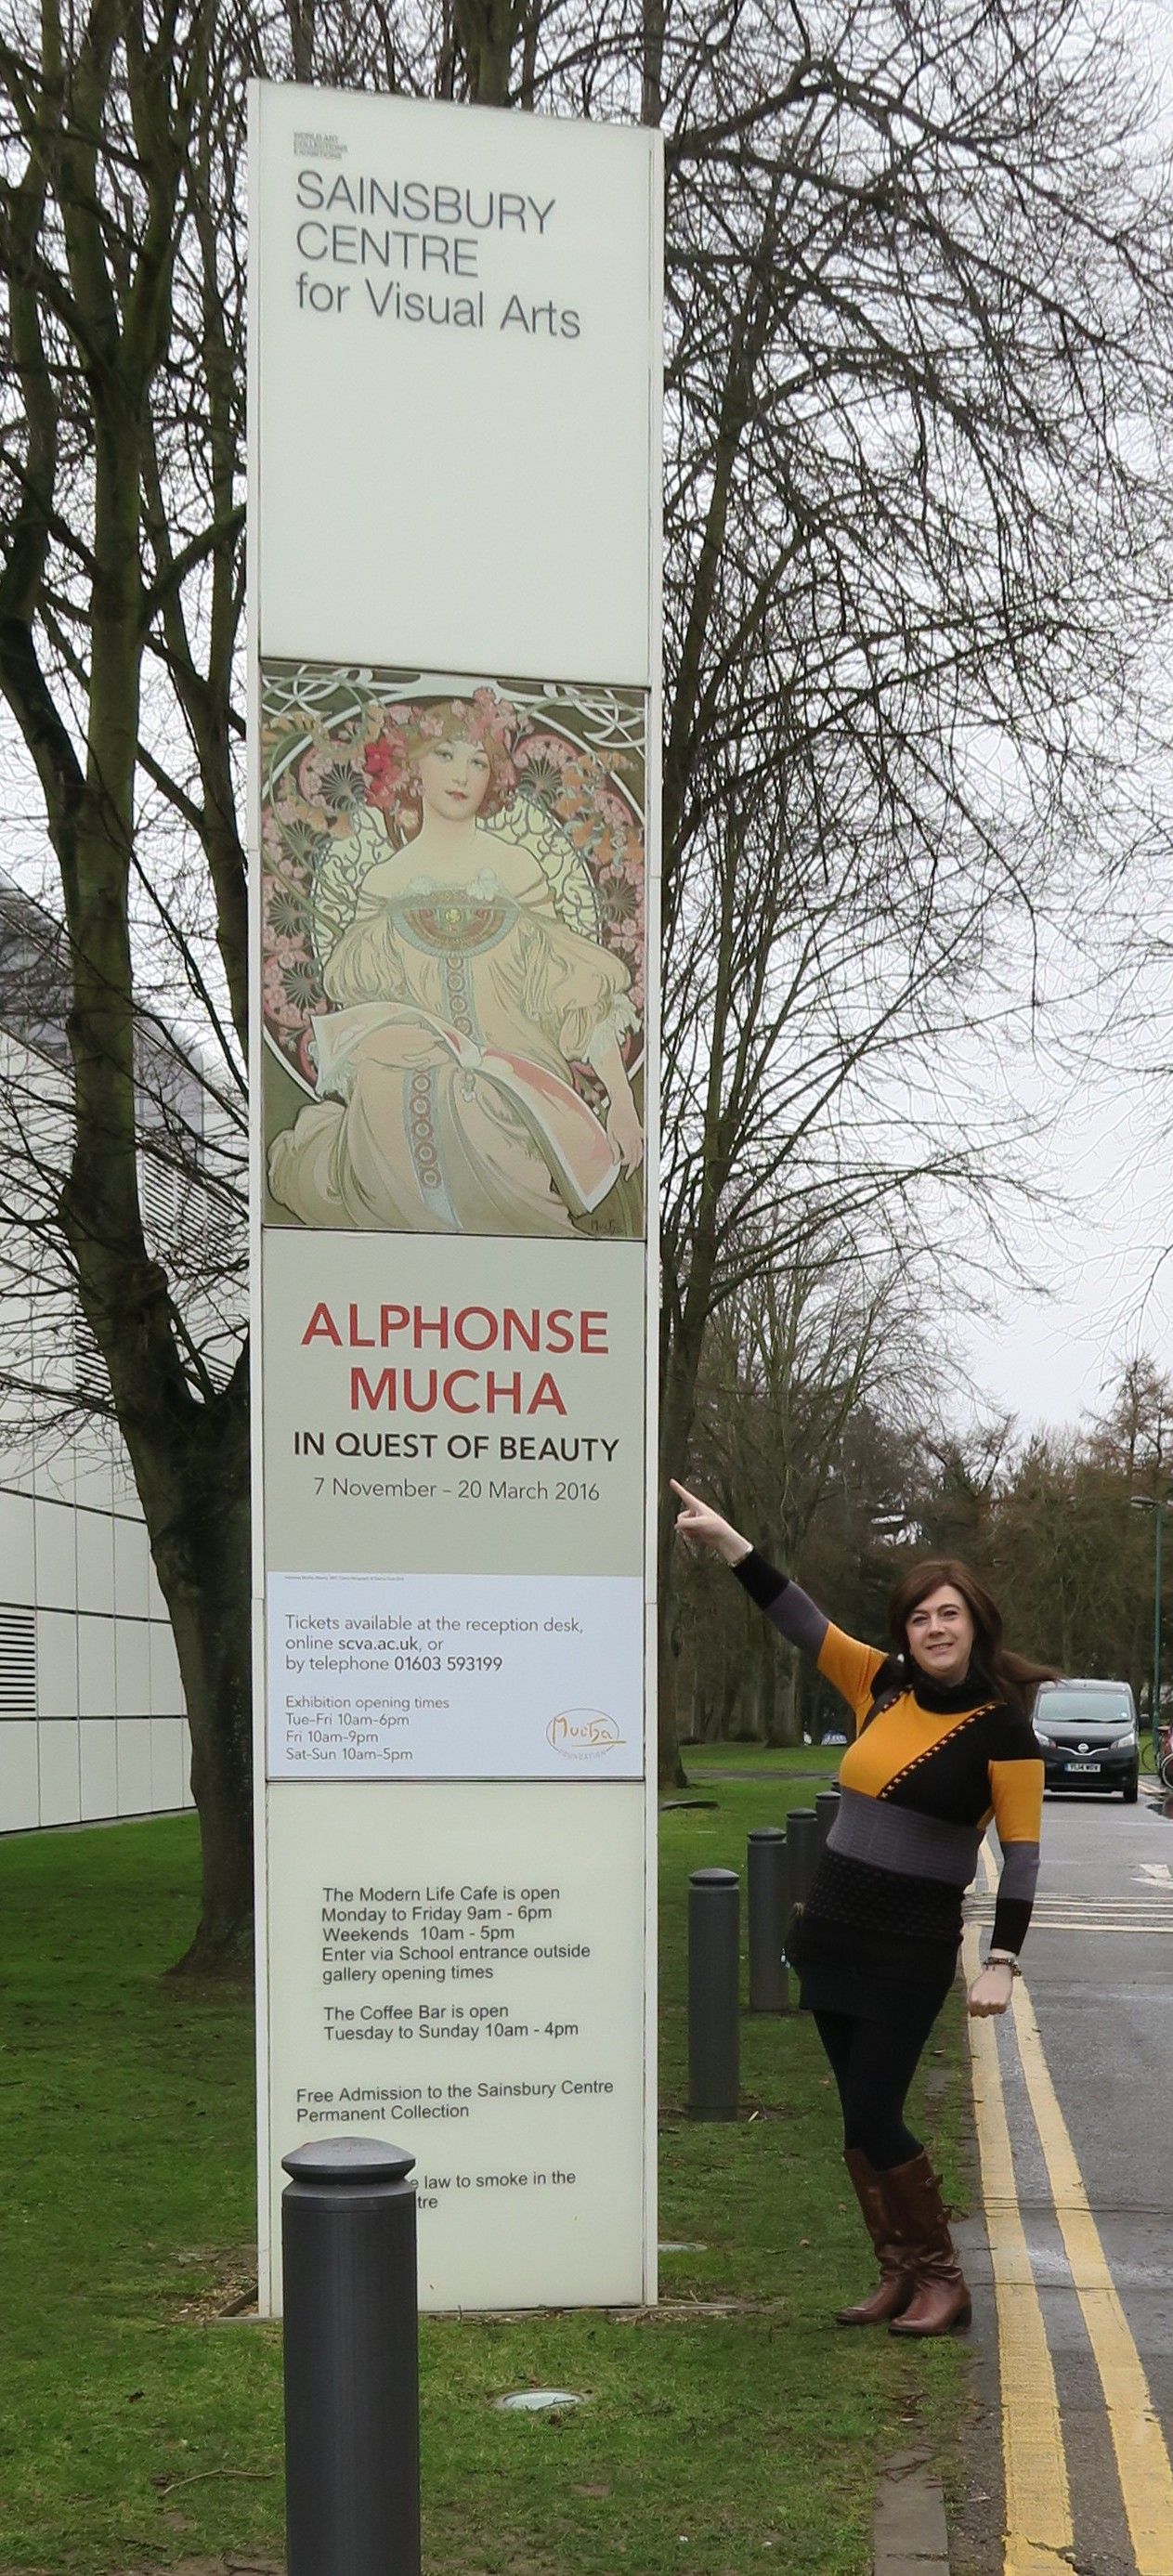 Alfonse Mucha exhibition. Sainsbury Centre for Visual Arts University of East Anglia